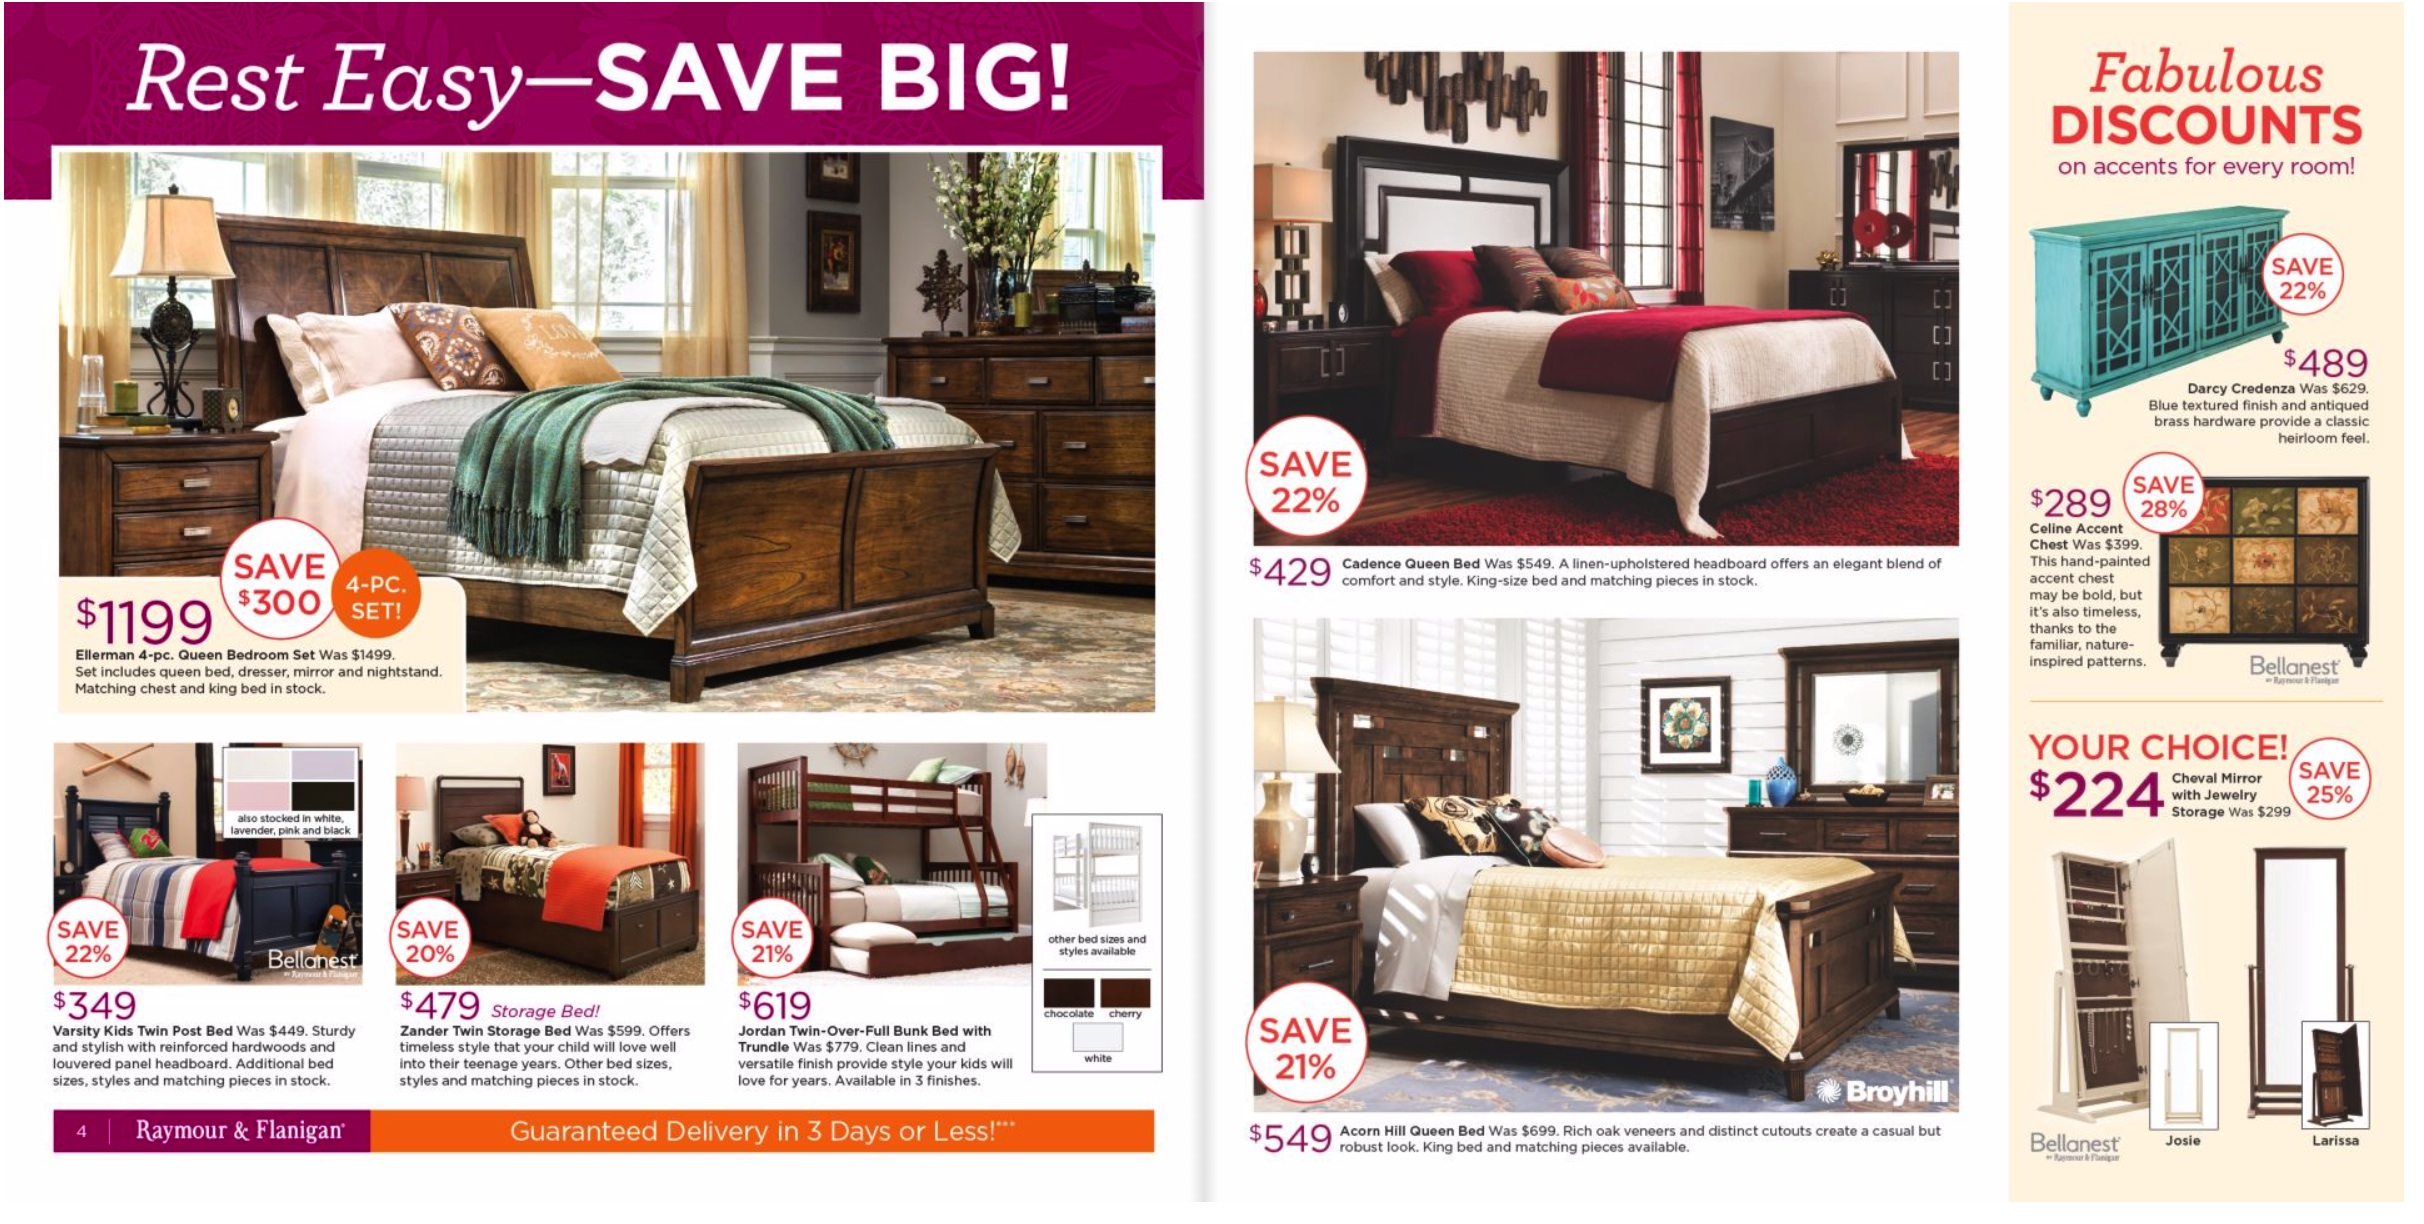 Raymour And Flanigan Black Friday 2019 Ad For Furniture Deals Funtober